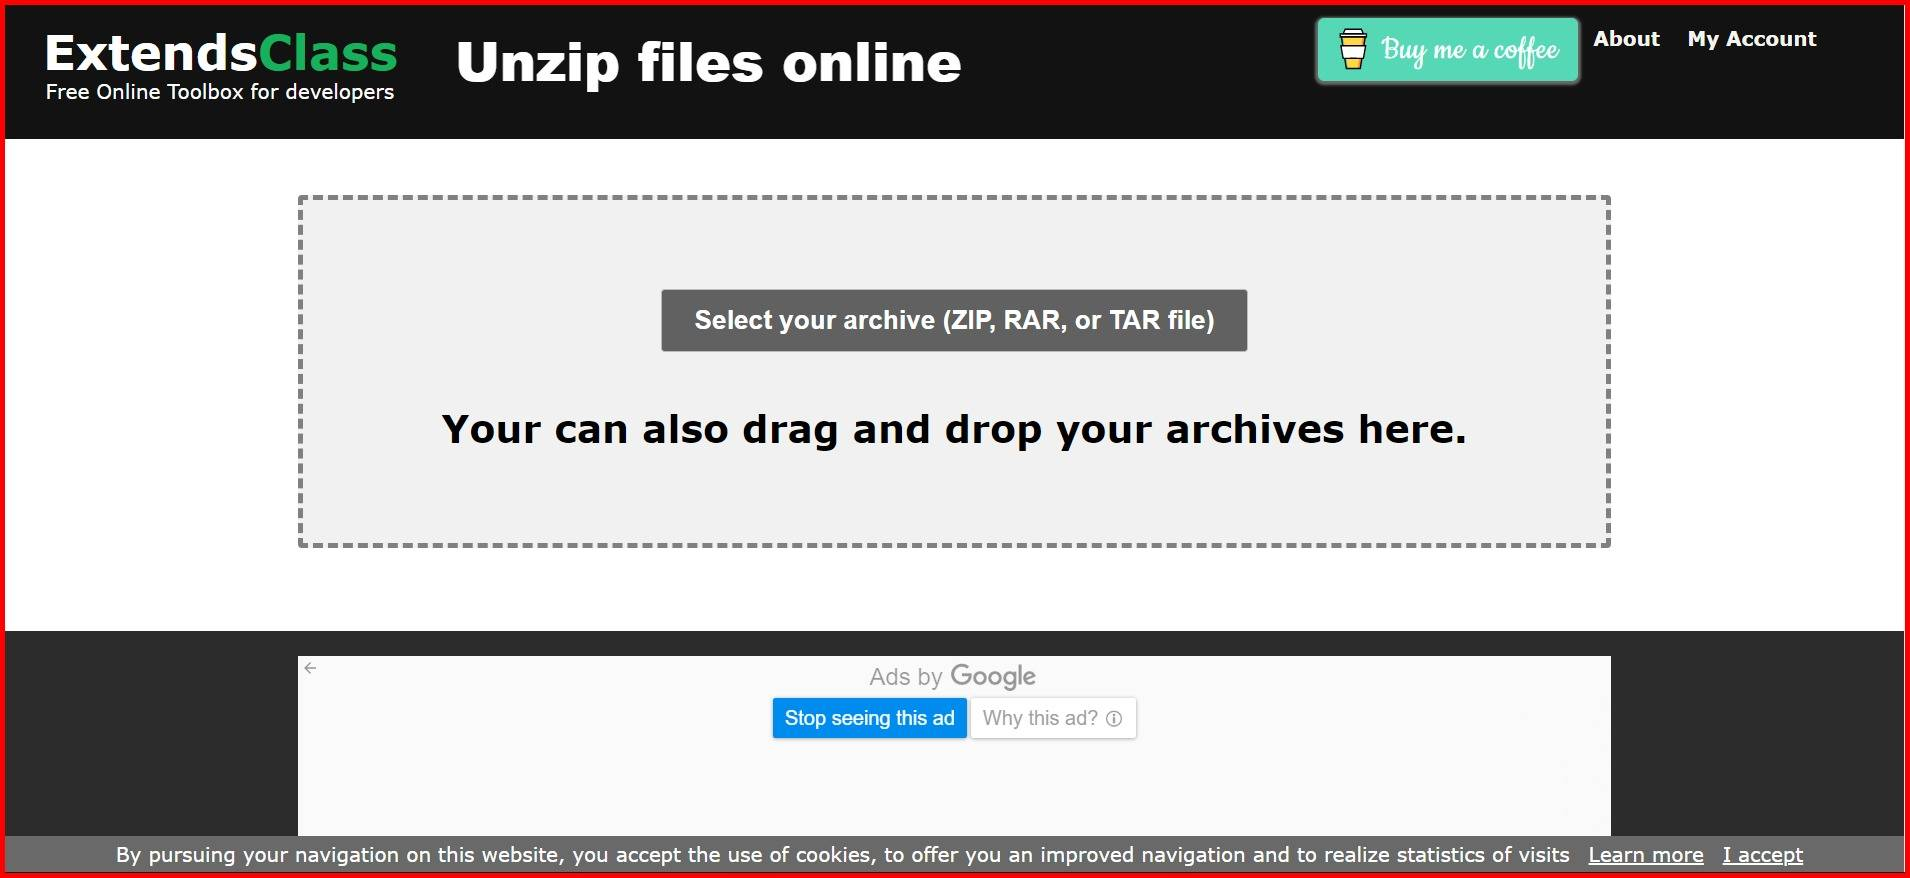 Open rar files online with extendsclass unzip tool mrnoob